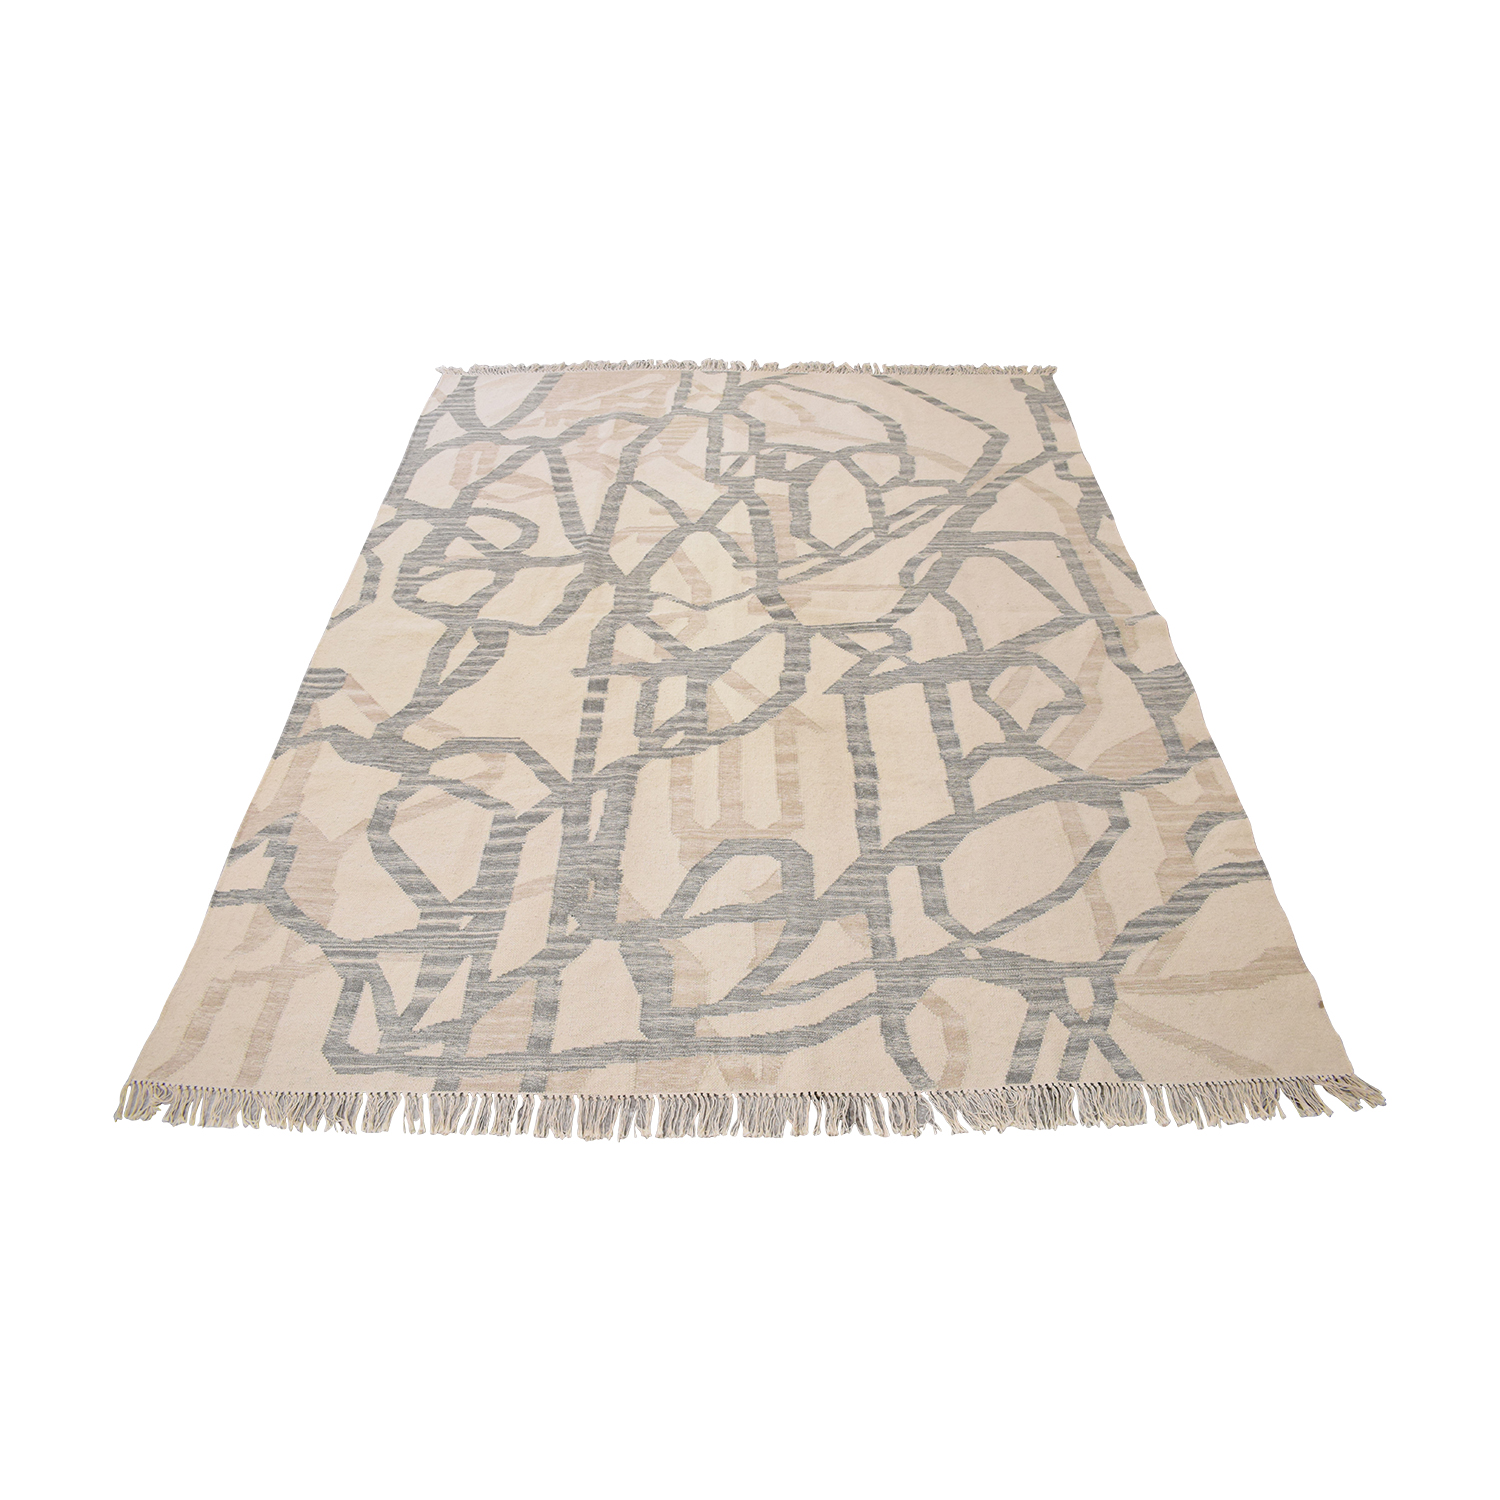 48 Off West Elm West Elm Hazy Lattice Rug Decor